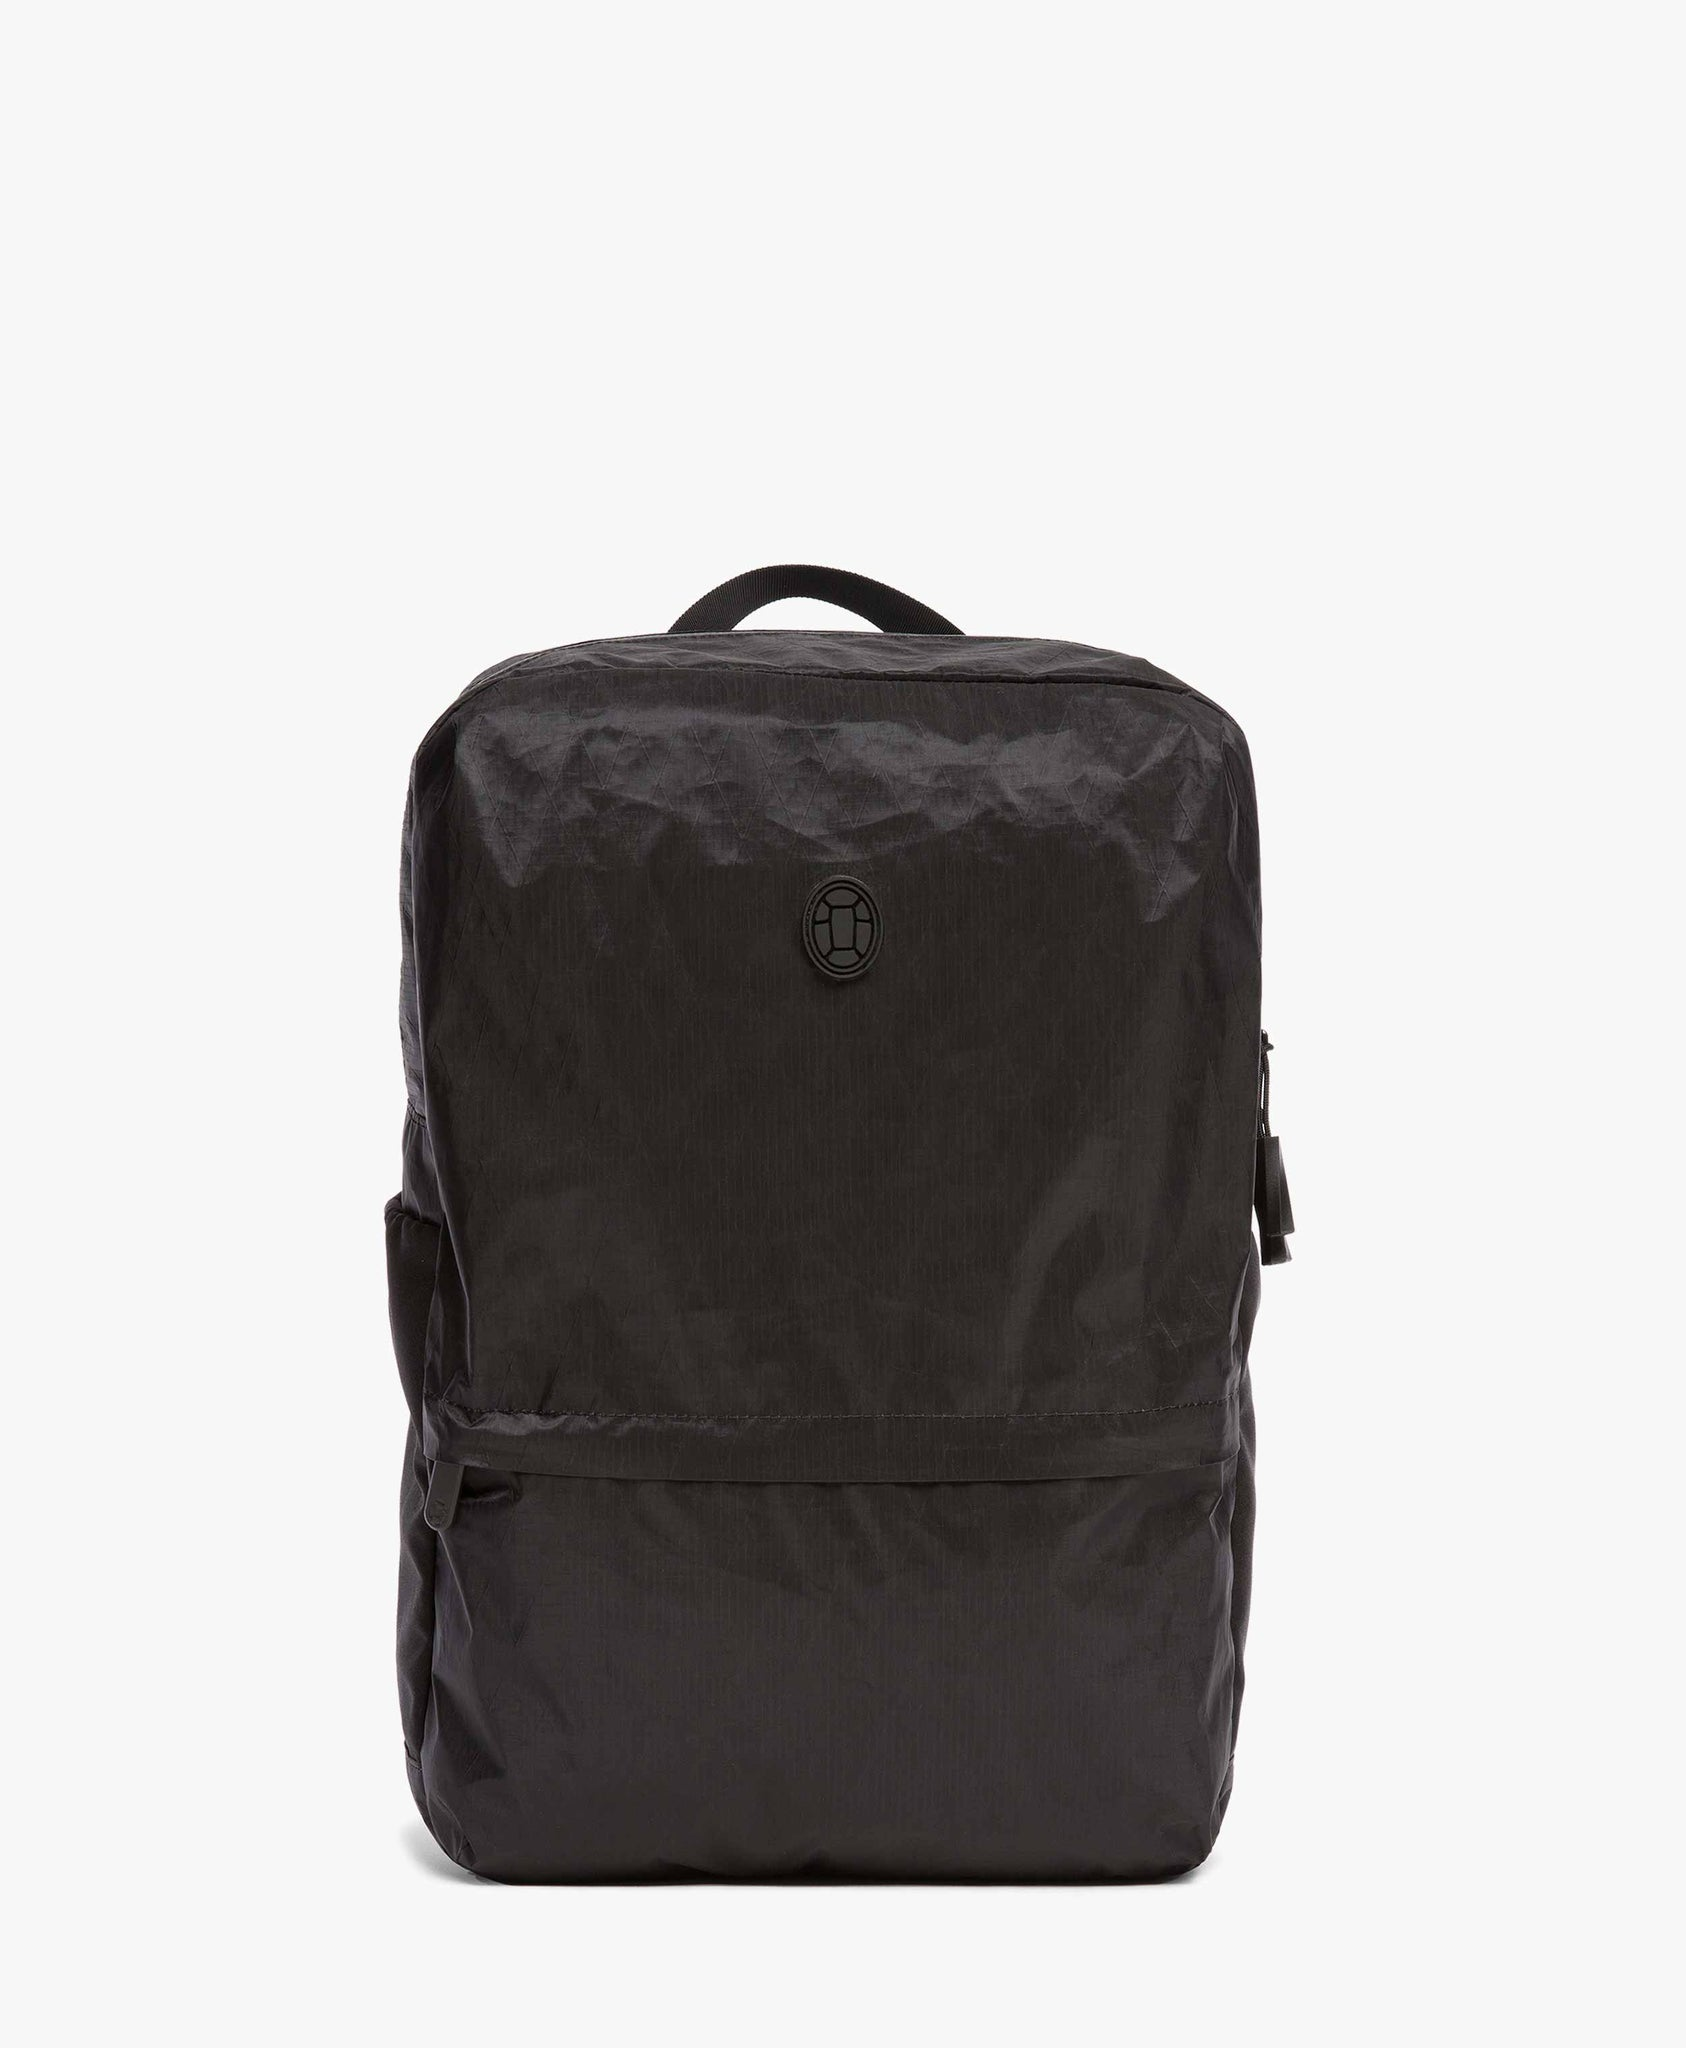 product/ The laptop-friendly daypack that packs flat in your carry on